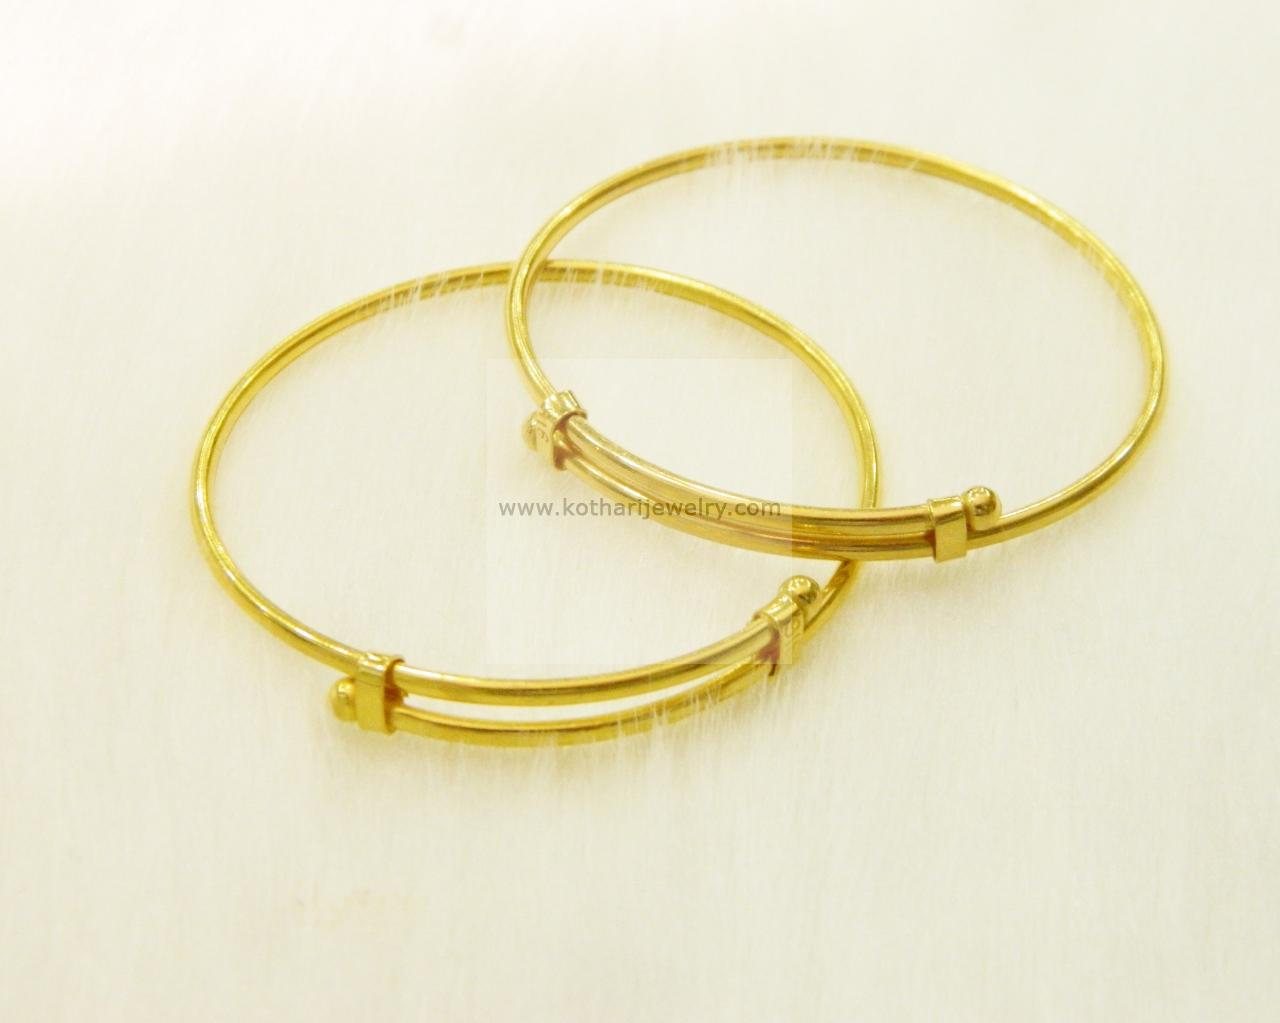 22kt Gold Baby Bangles